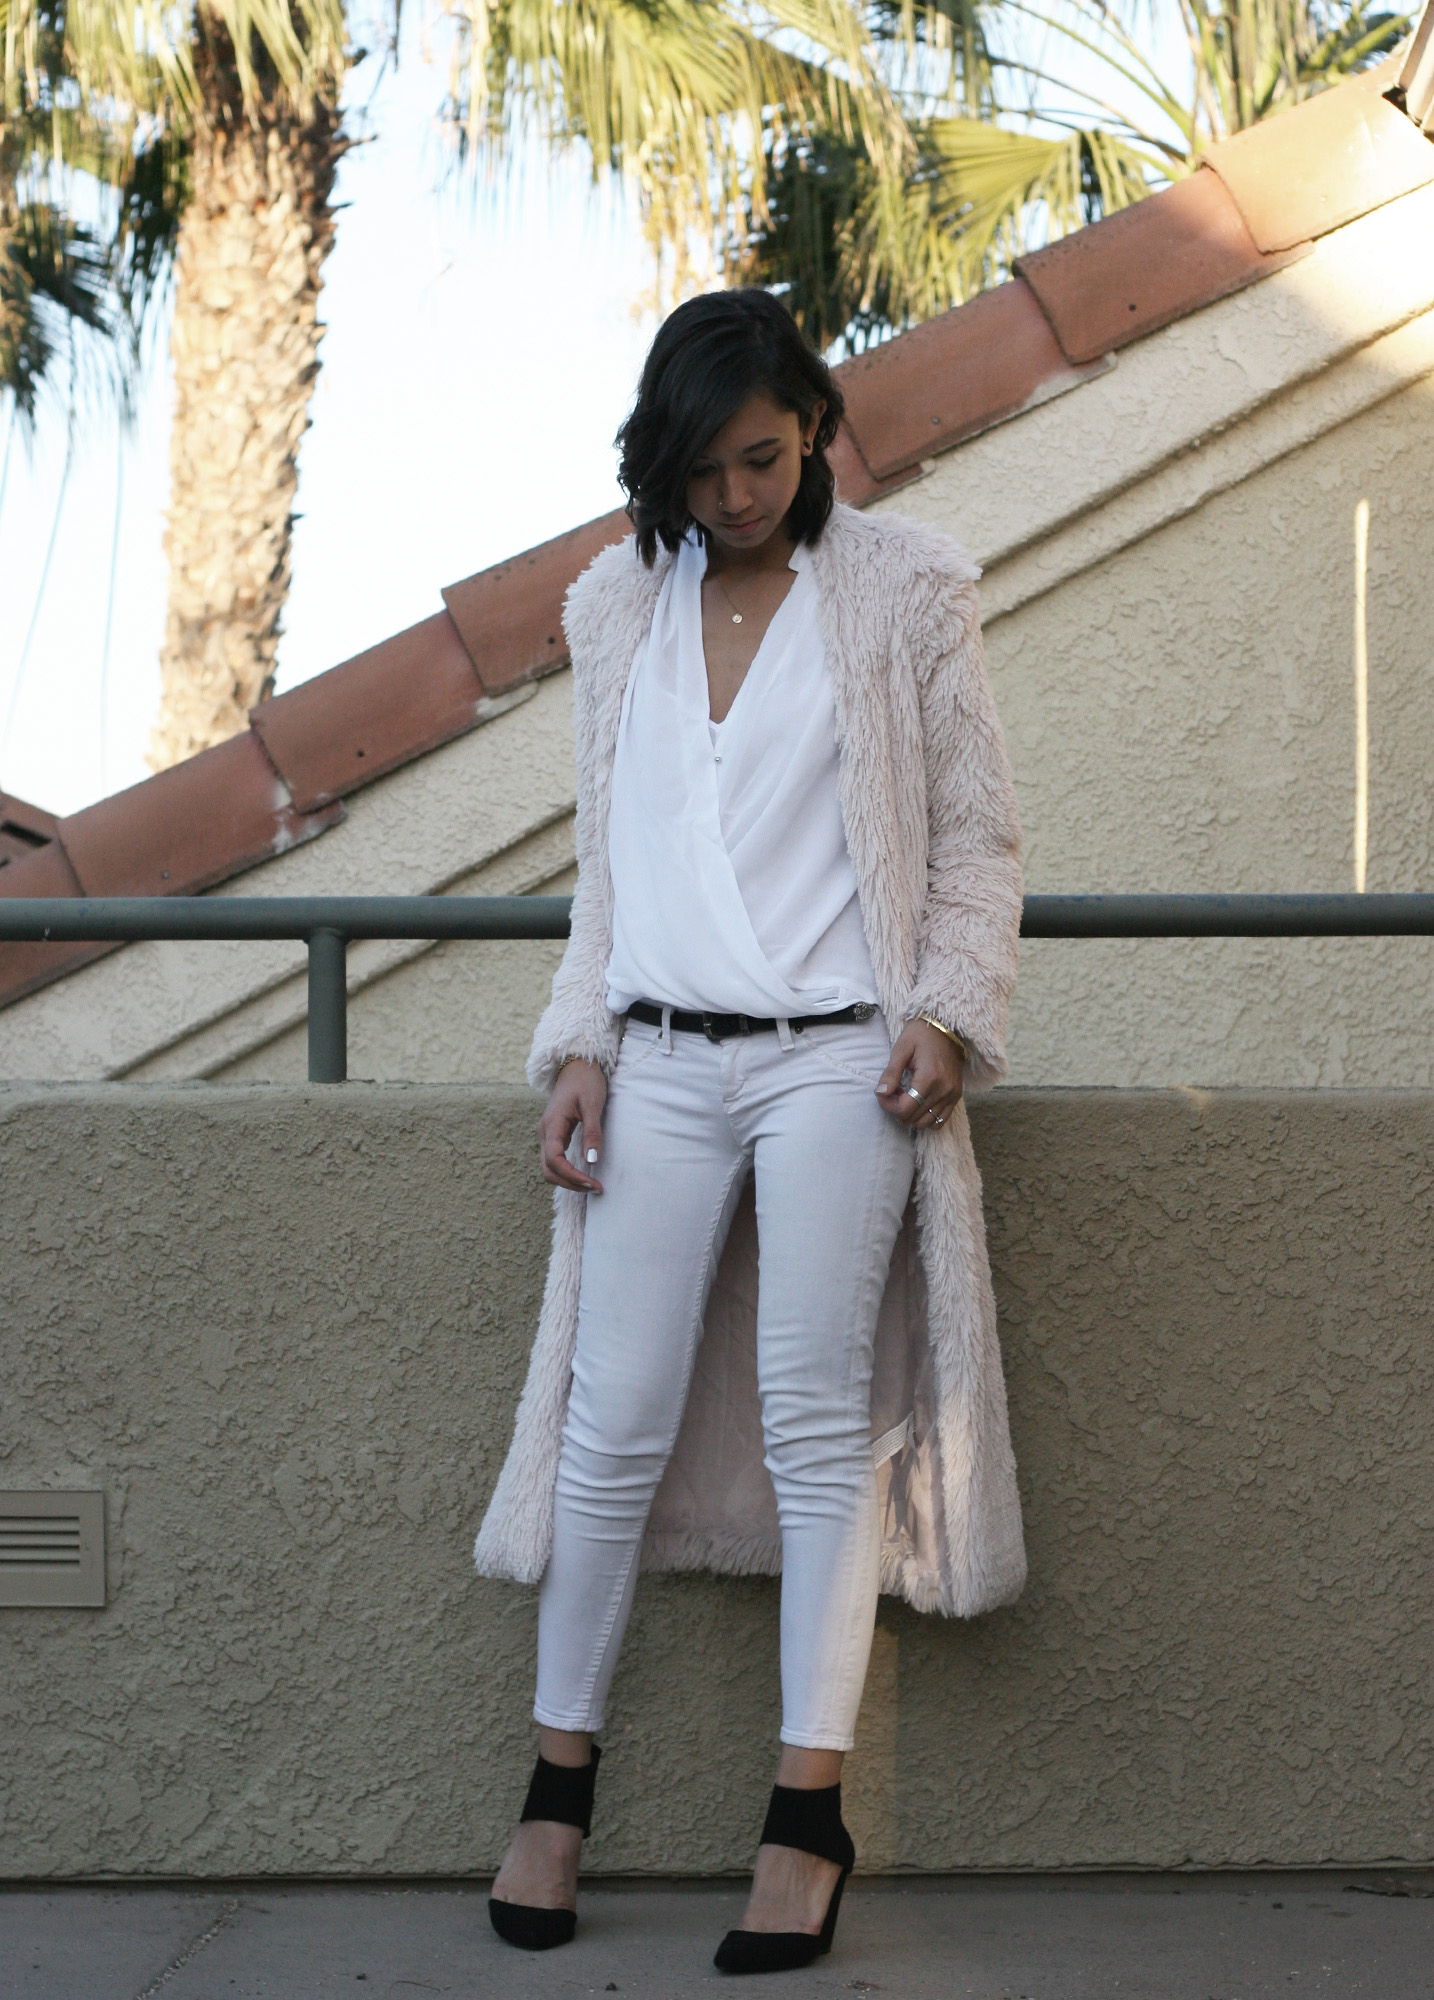 Stephanie Heyden, Southern California Fashion Blogger